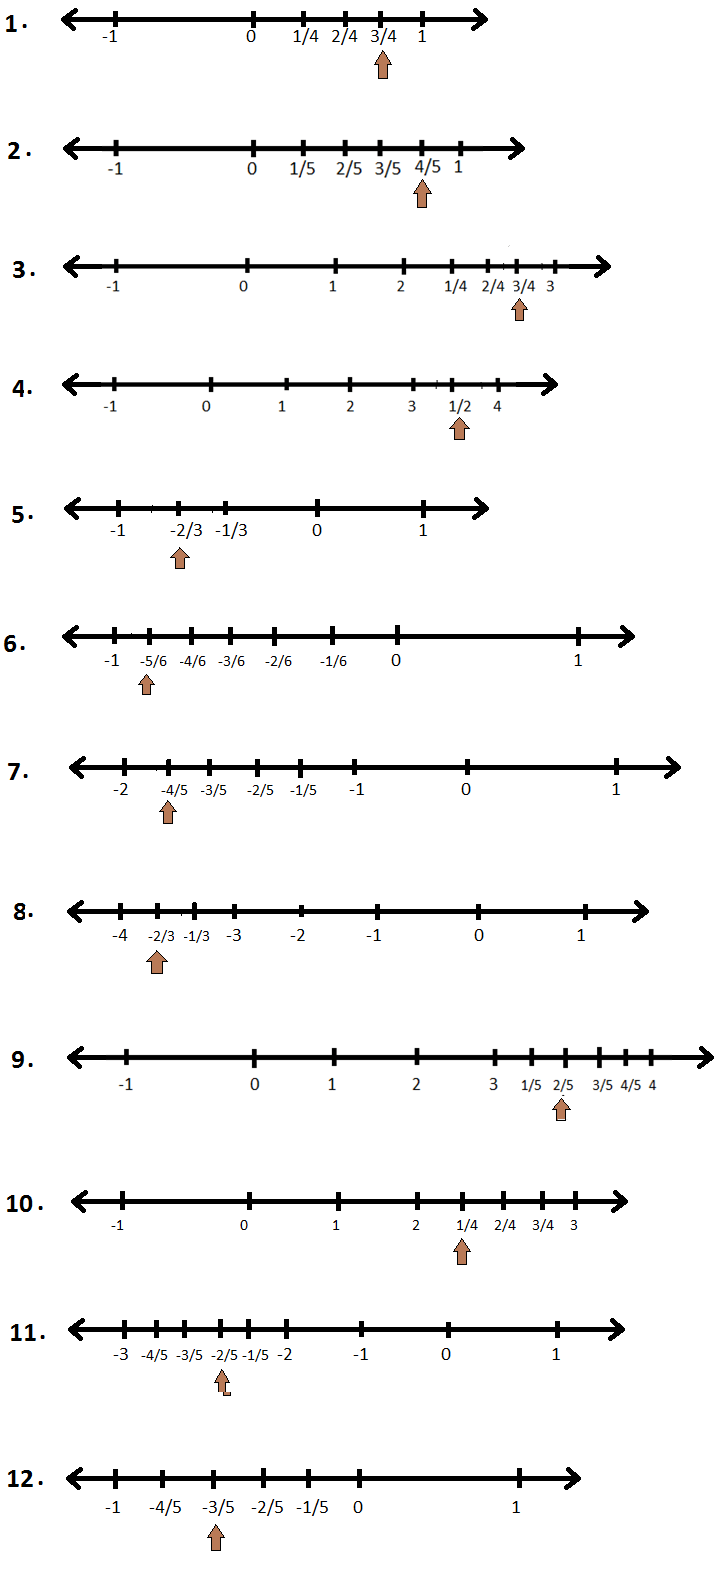 hight resolution of Worksheet on Representation of Rational Numbers on the Number Line   Answers